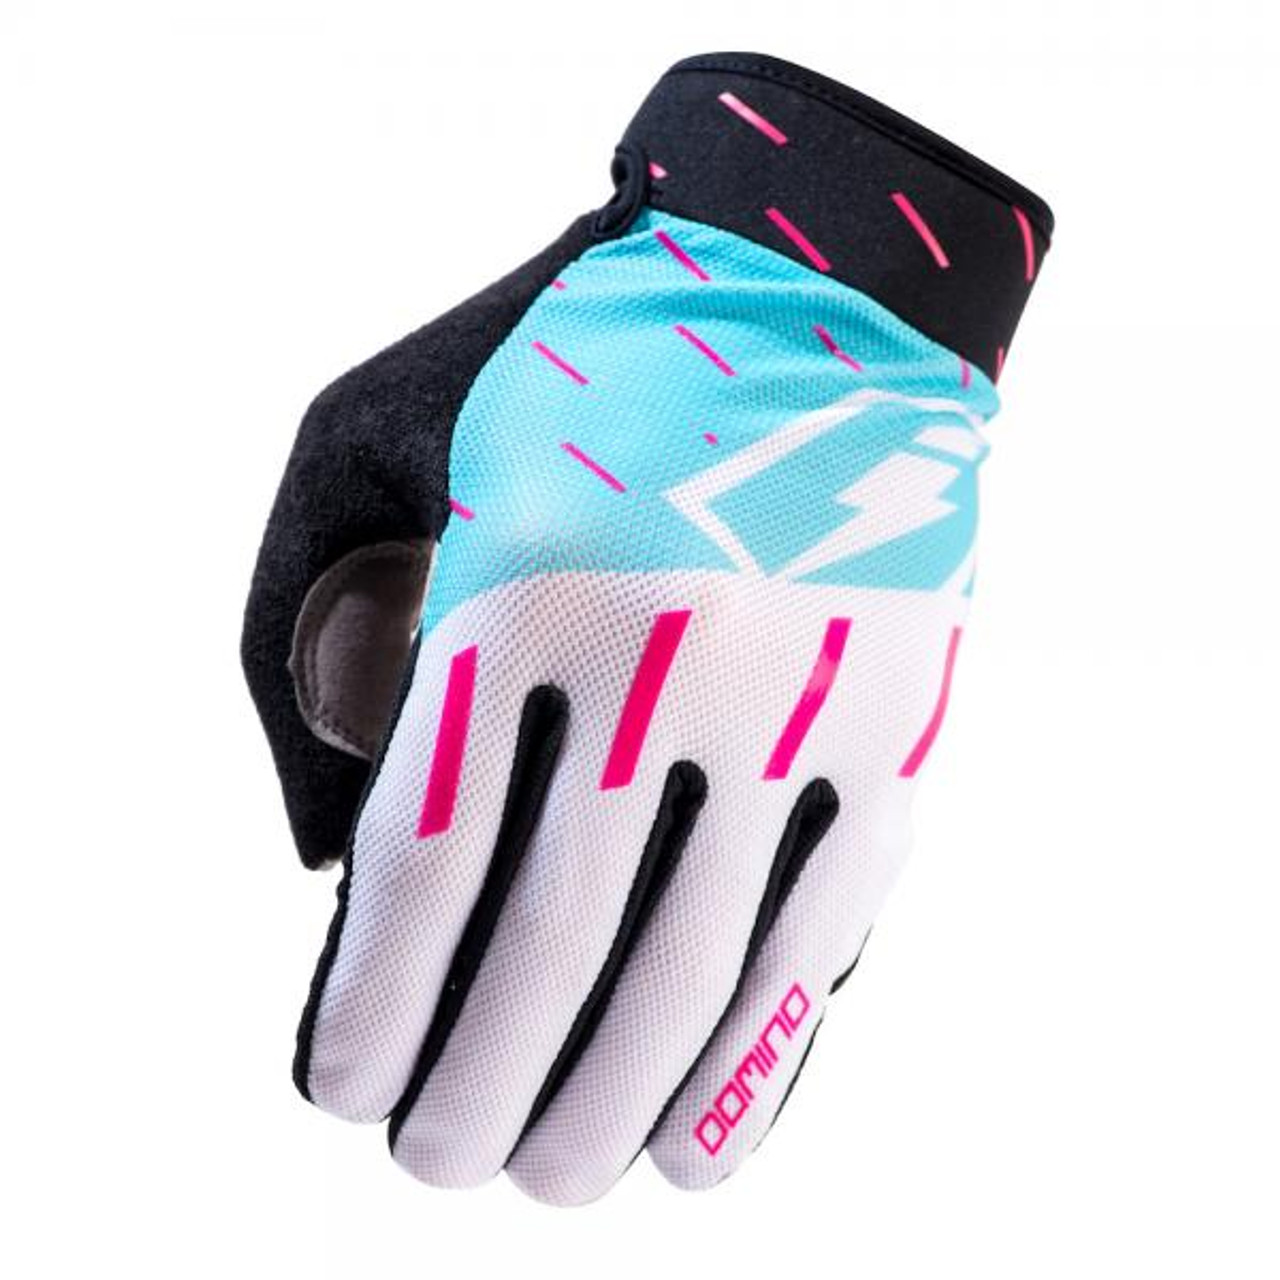 Gloves Domino,white/ teal/ purple